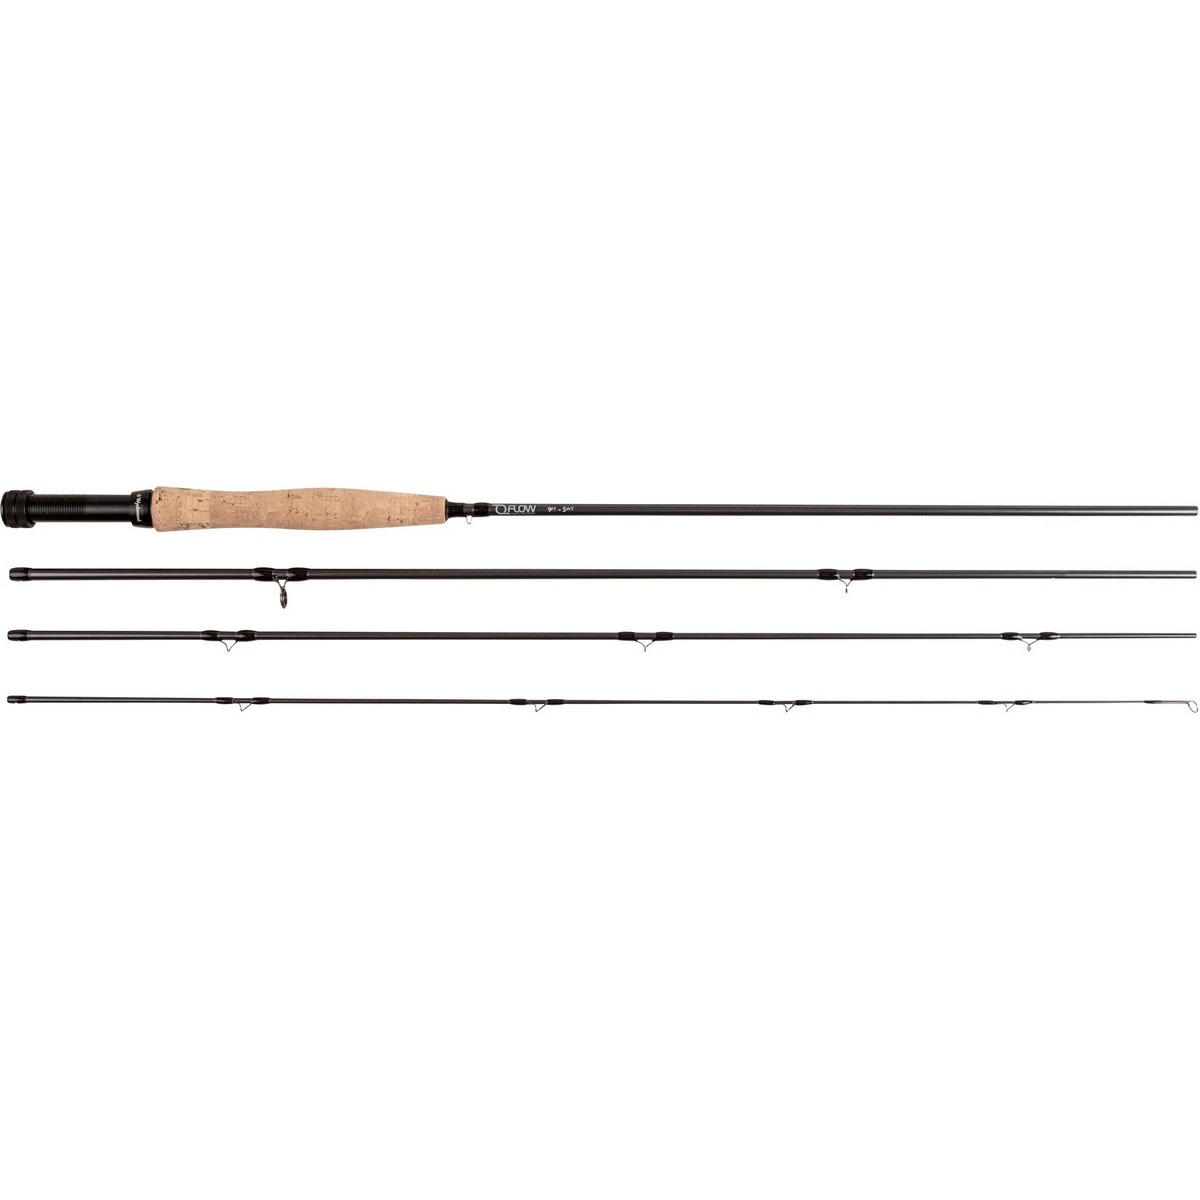 Wychwood Muškařský prut Flow Fly Rod 10ft, #7